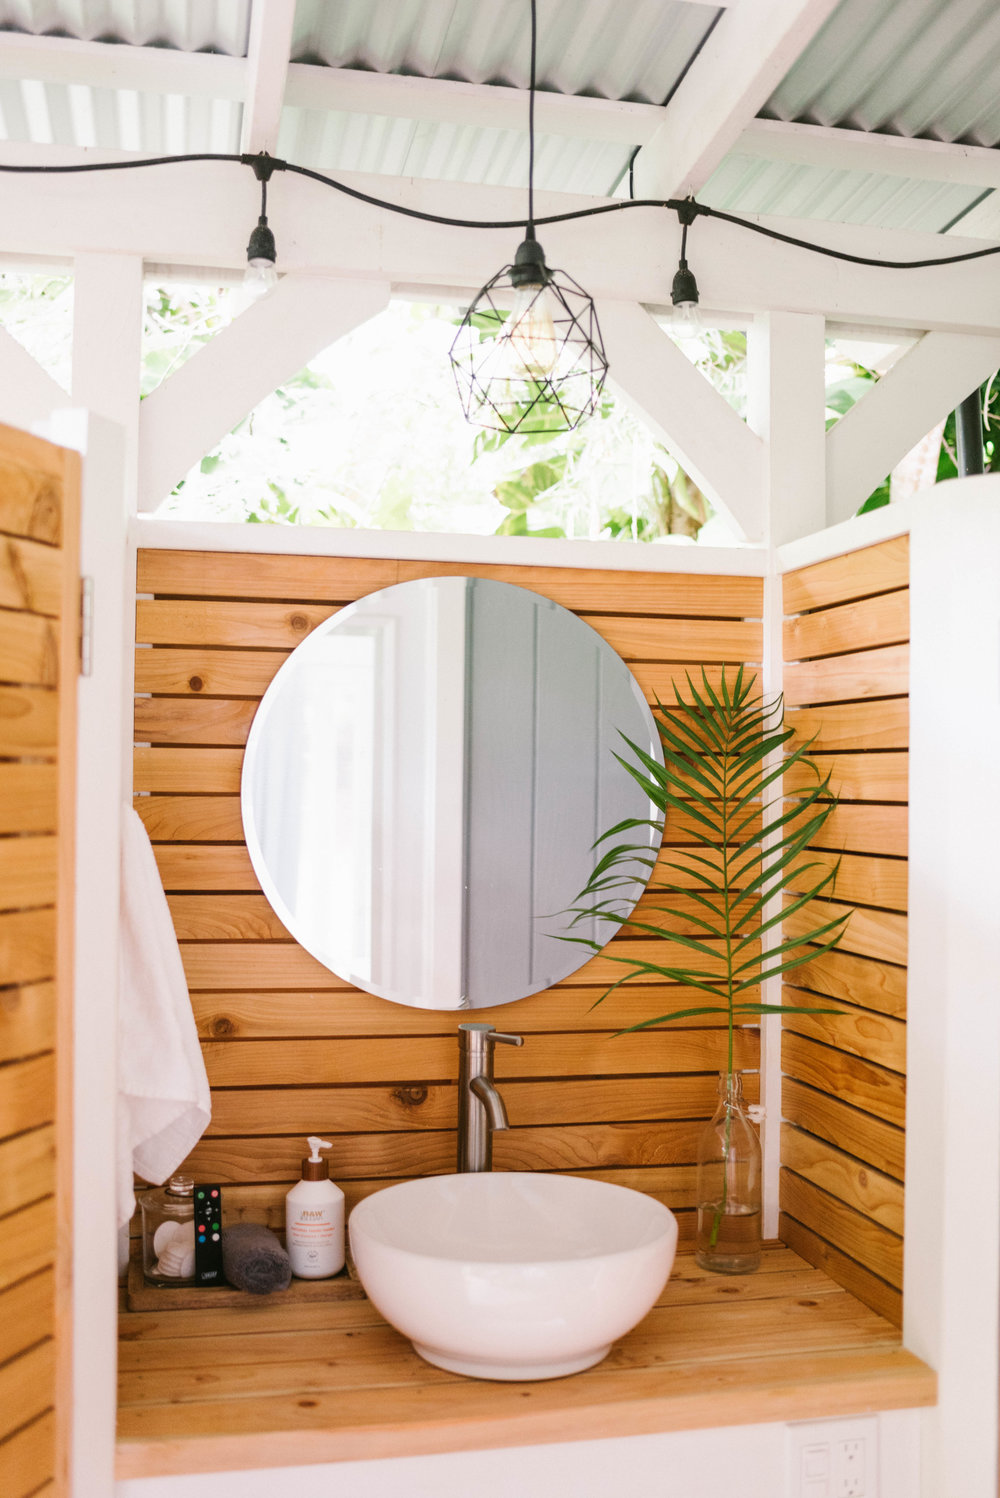 Where to Stay on Oahu, Hawaii | North Shore Bungalow